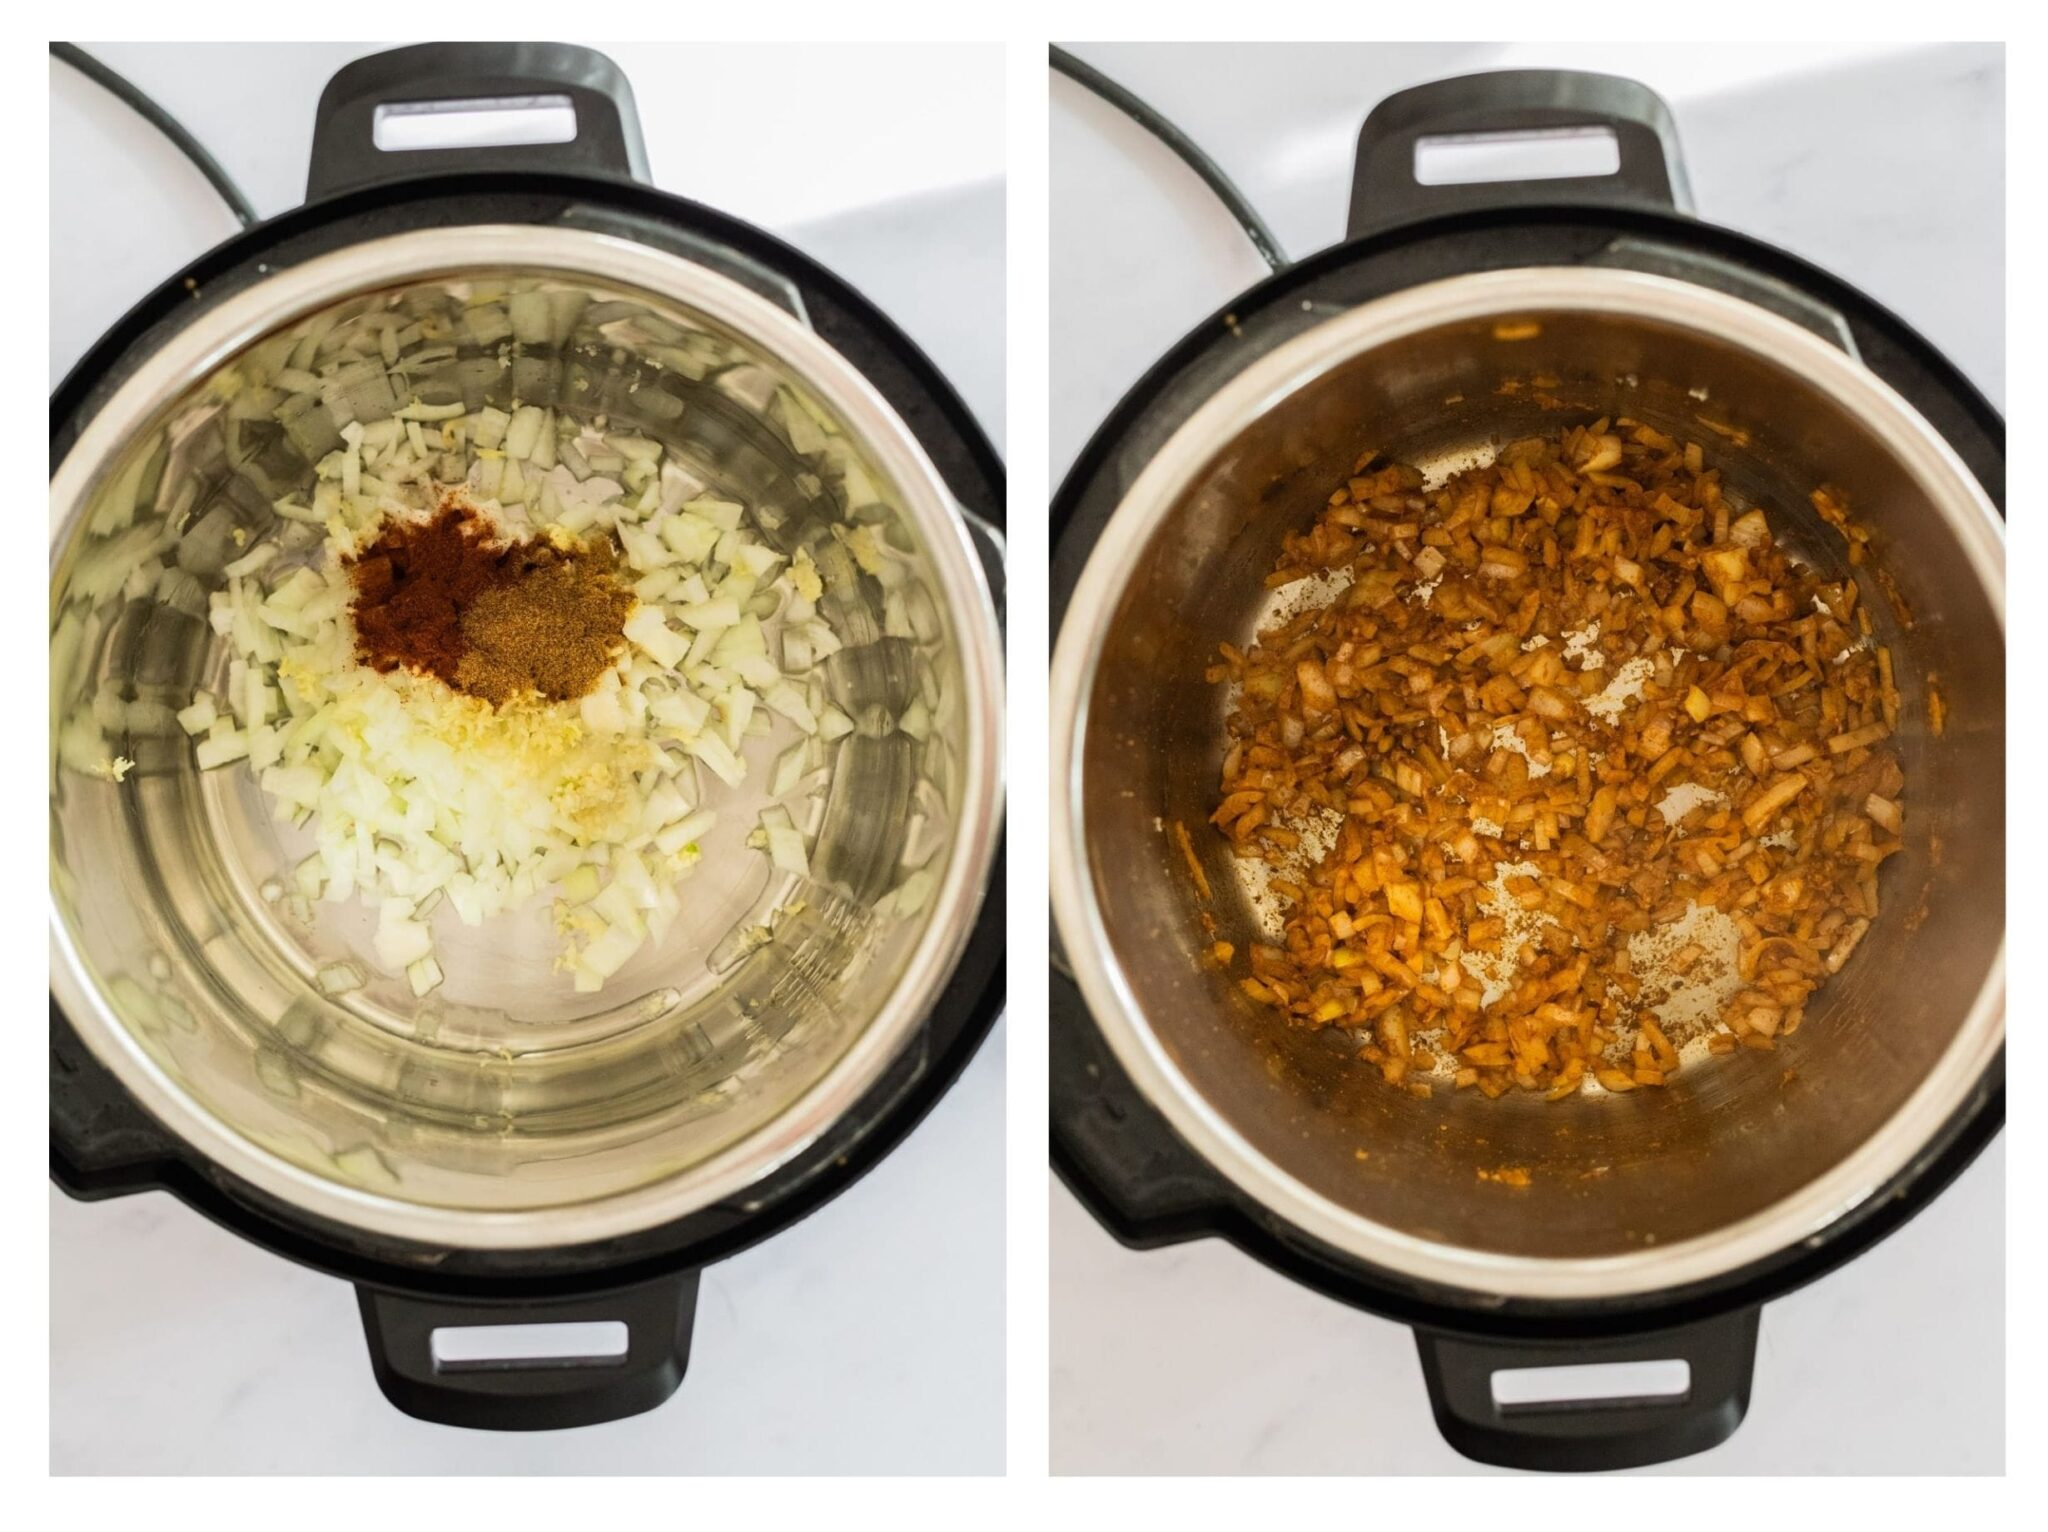 A photo collage of onions and spices in the Instant Pot and sauteed onions in the Instant Pot.